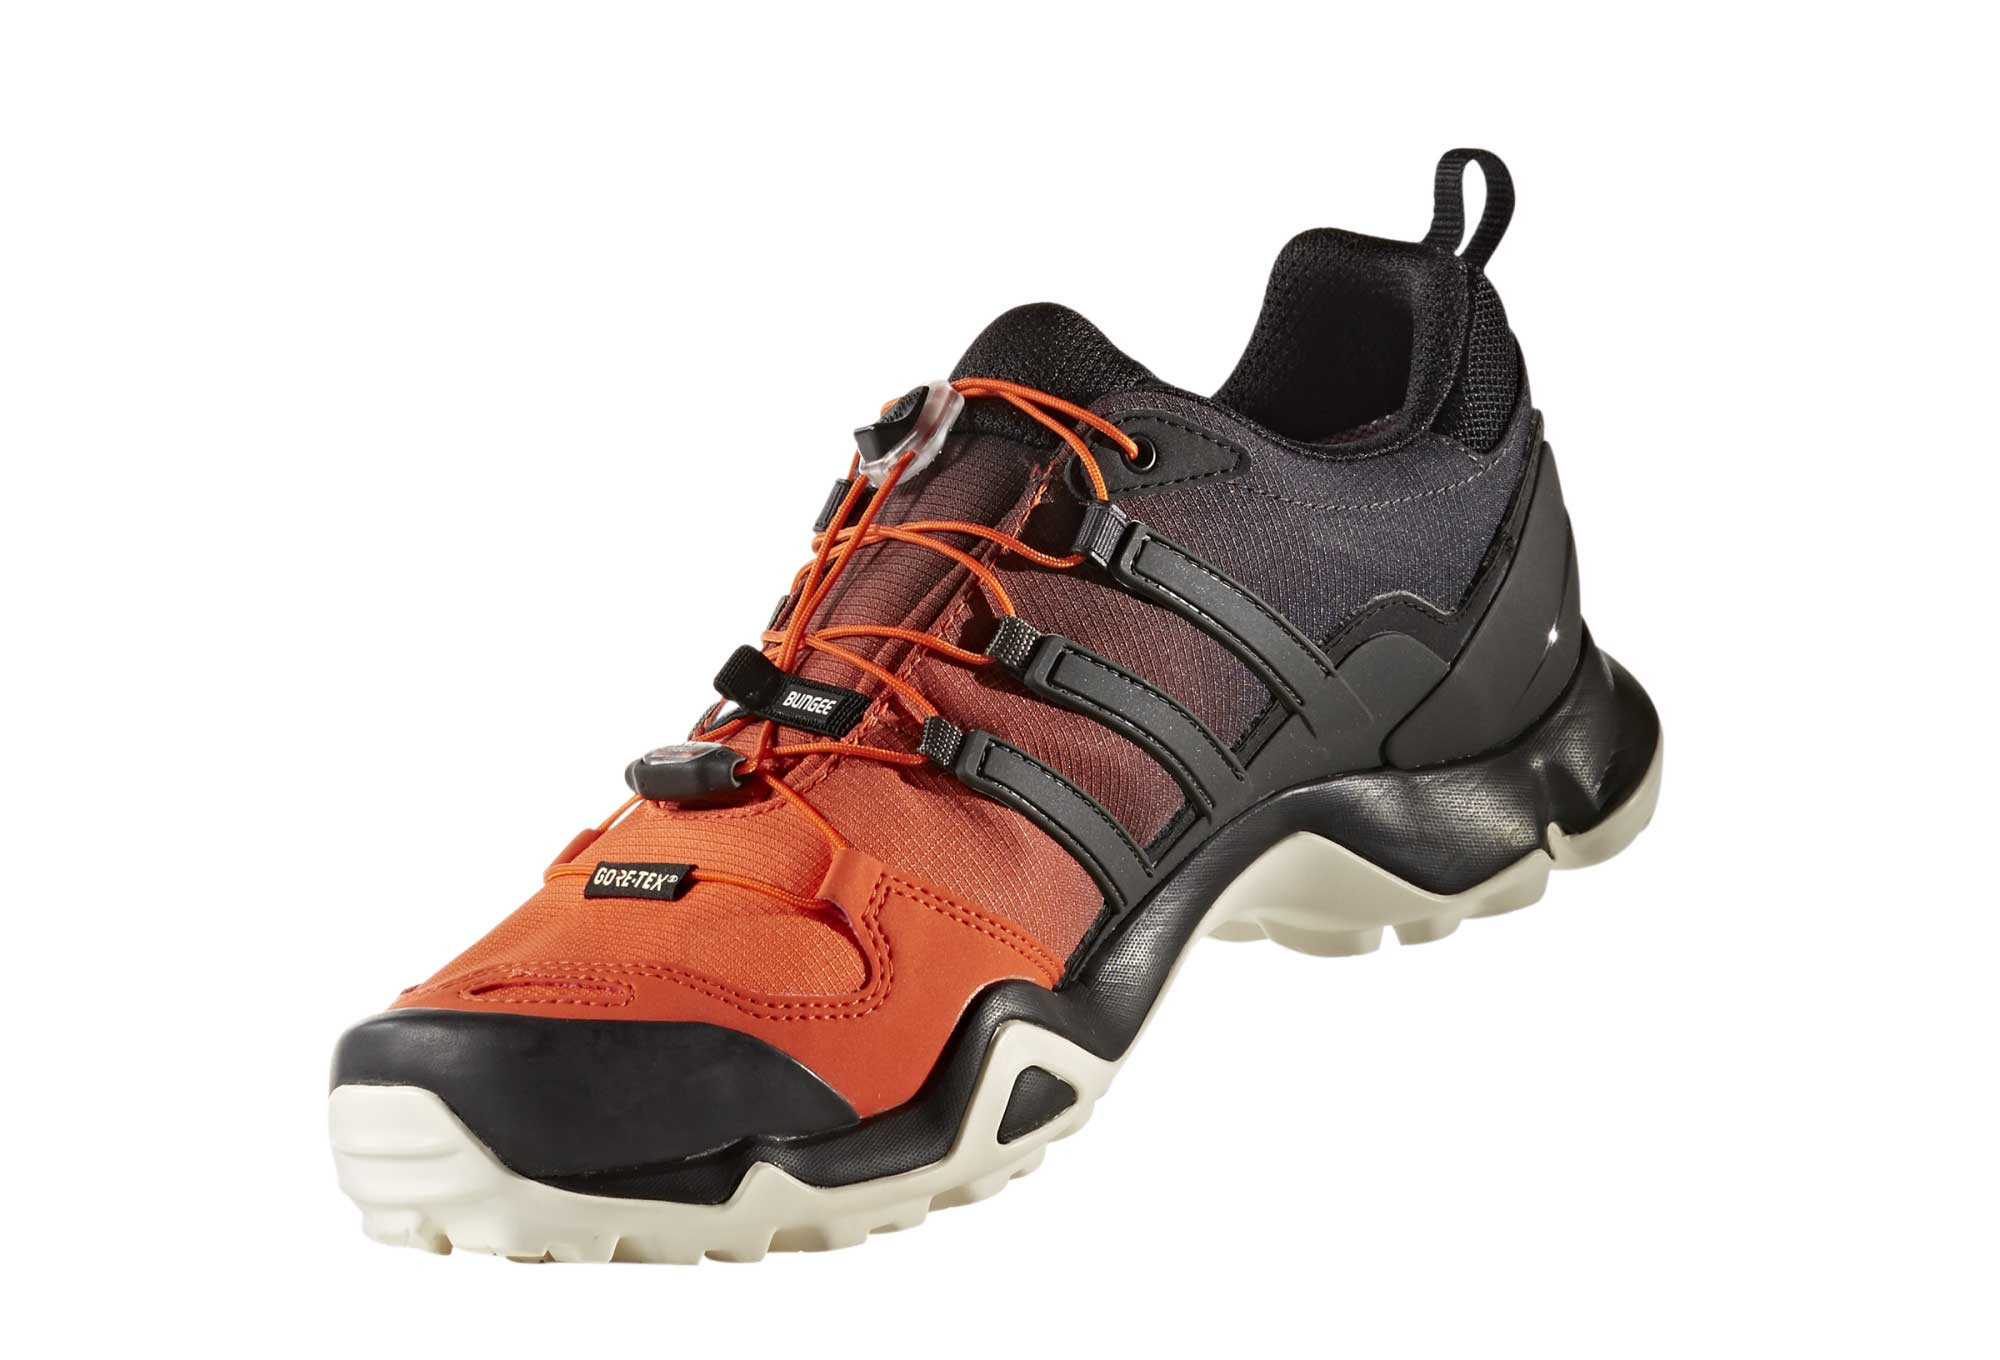 Adidas Terrex Swift R Gtx Hombre Magnífico Adidas Running Terrex Swift R Gtx orange Black Men Of Adidas Terrex Swift R Gtx Hombre Brillante Adidas Terrex Swift R Mid Gtx Calzado Hombre Azul